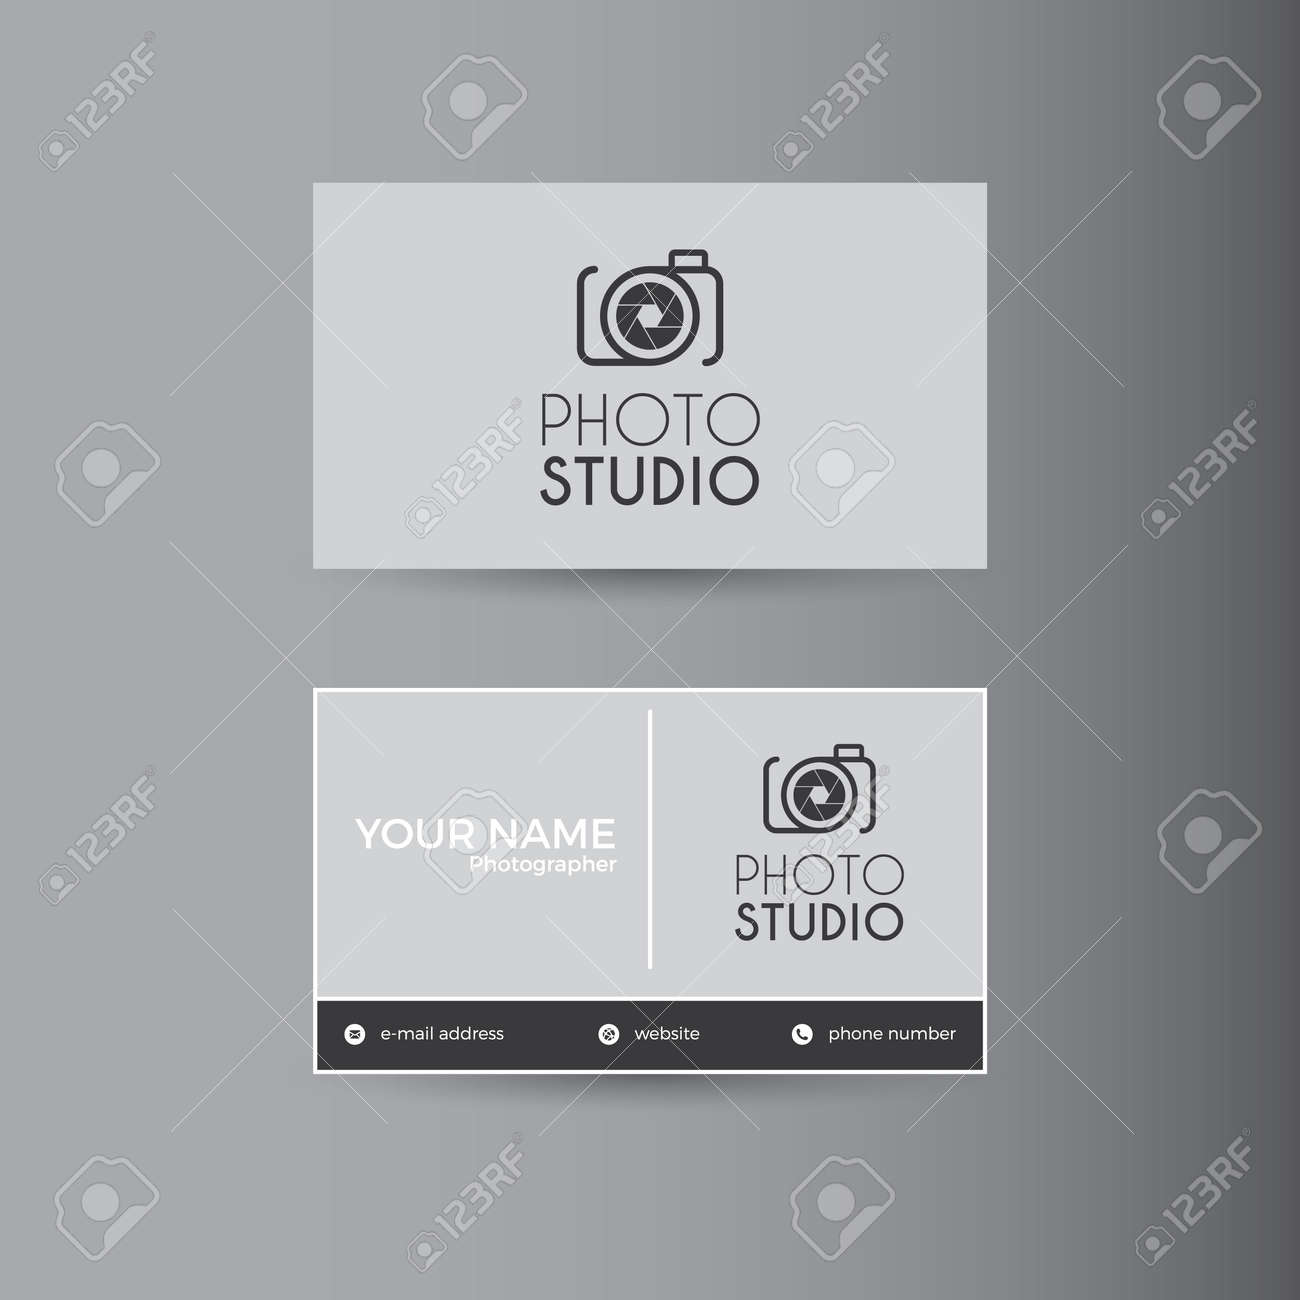 simple template for photography business card stock vector 72911056 - Photography Business Card